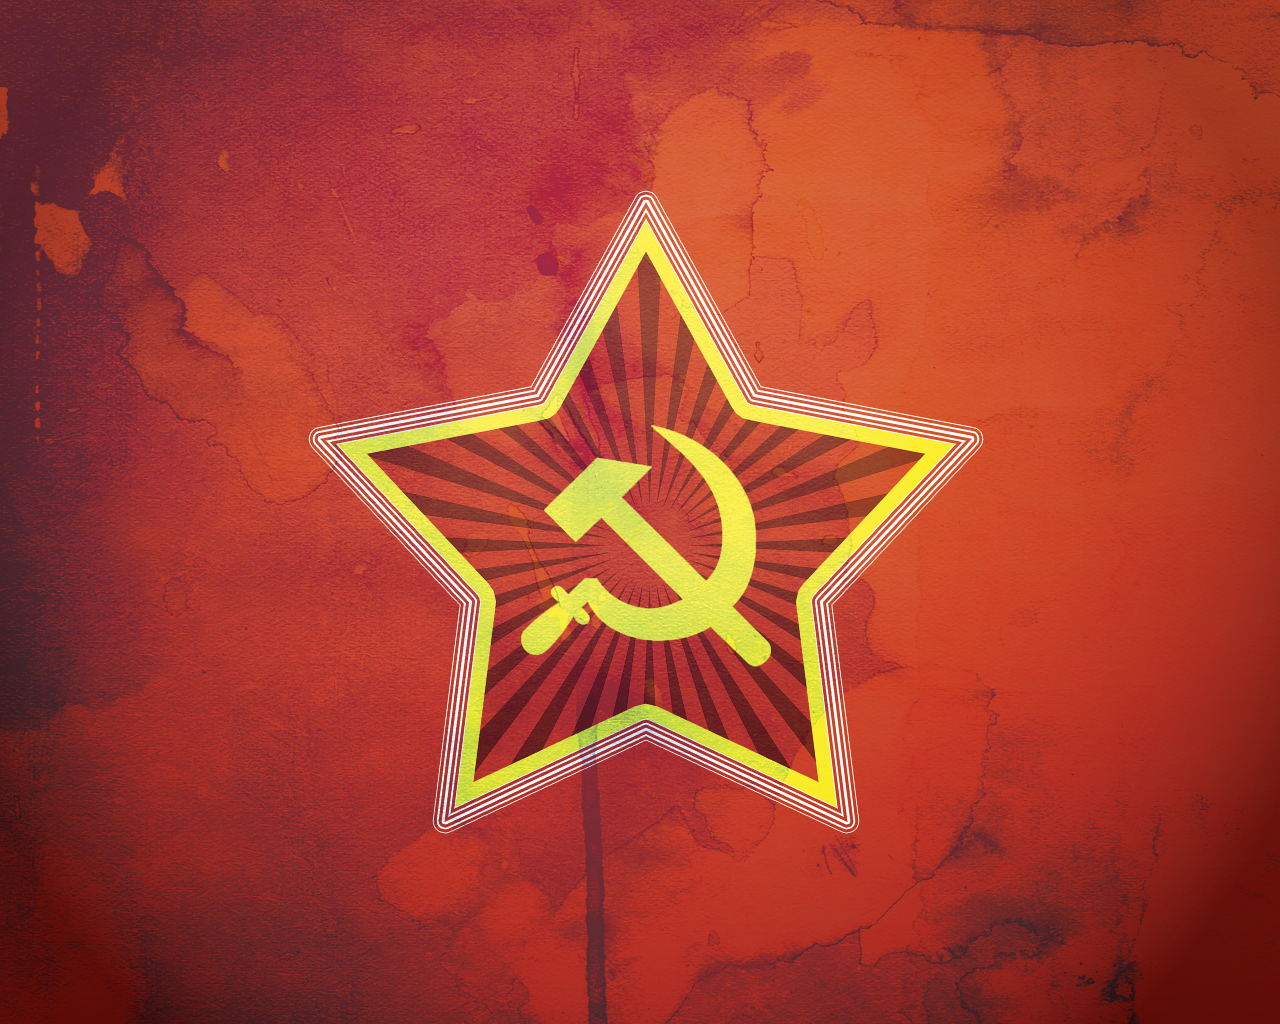 Soviet union wallpaper wallpapersafari - Ussr wallpaper ...